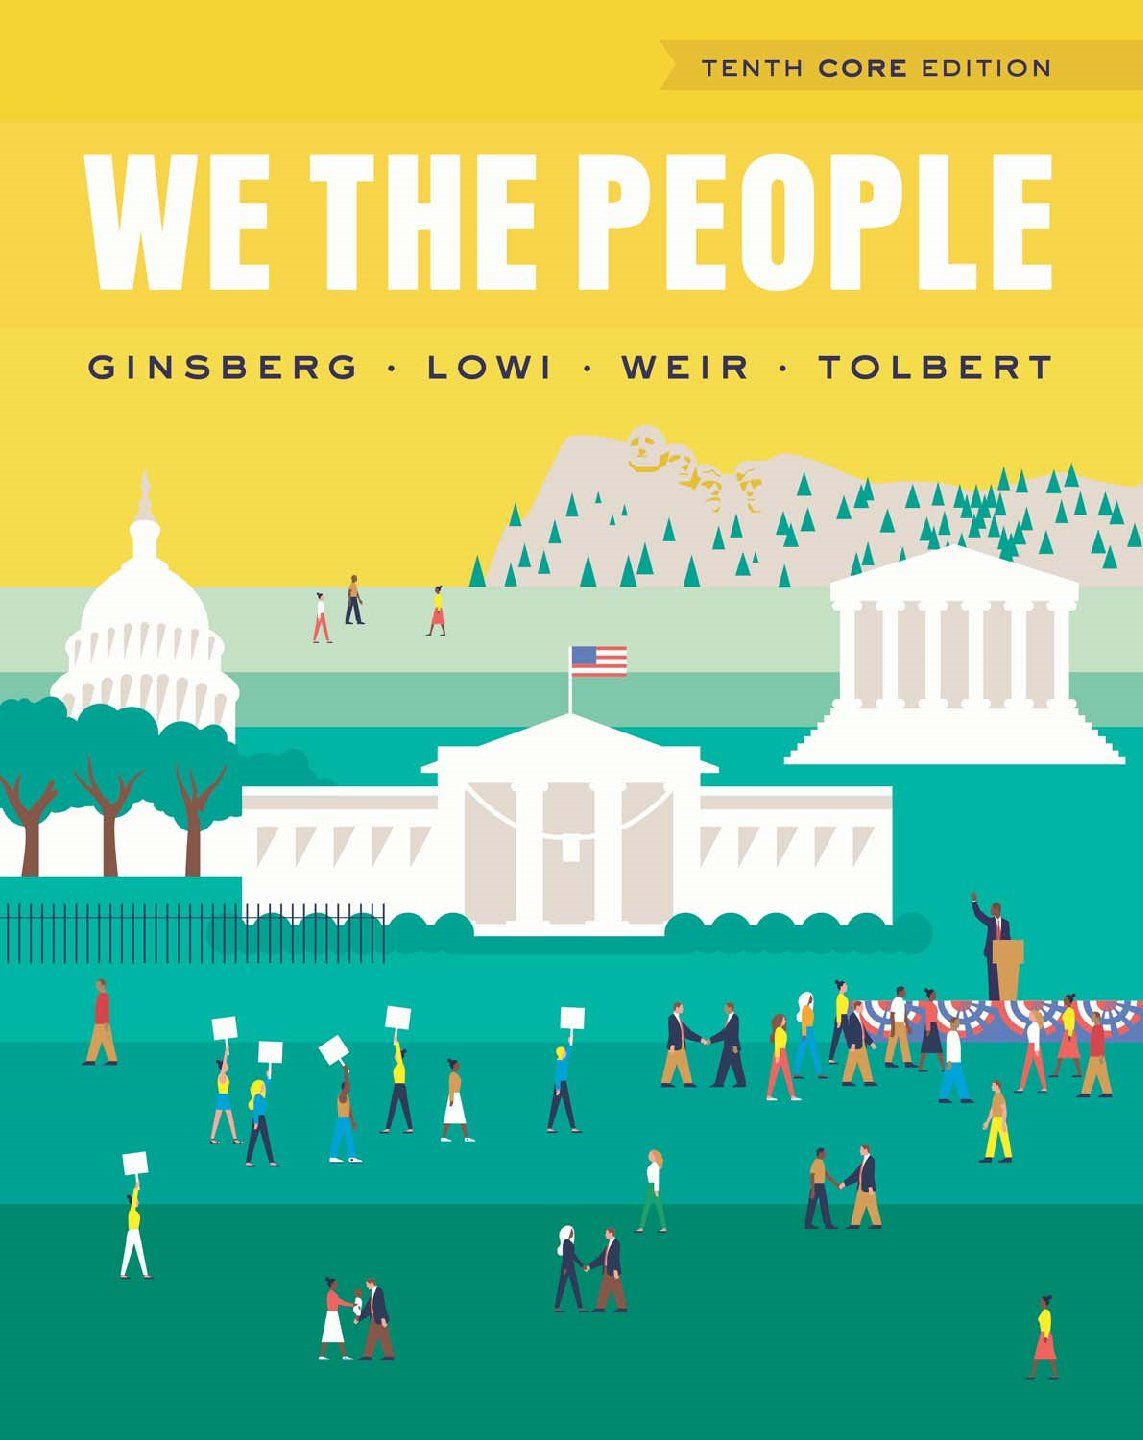 Read The Description Carefully We The People An Introduction To American  Politics Core Edition ( Pdf , Ebook ) Description